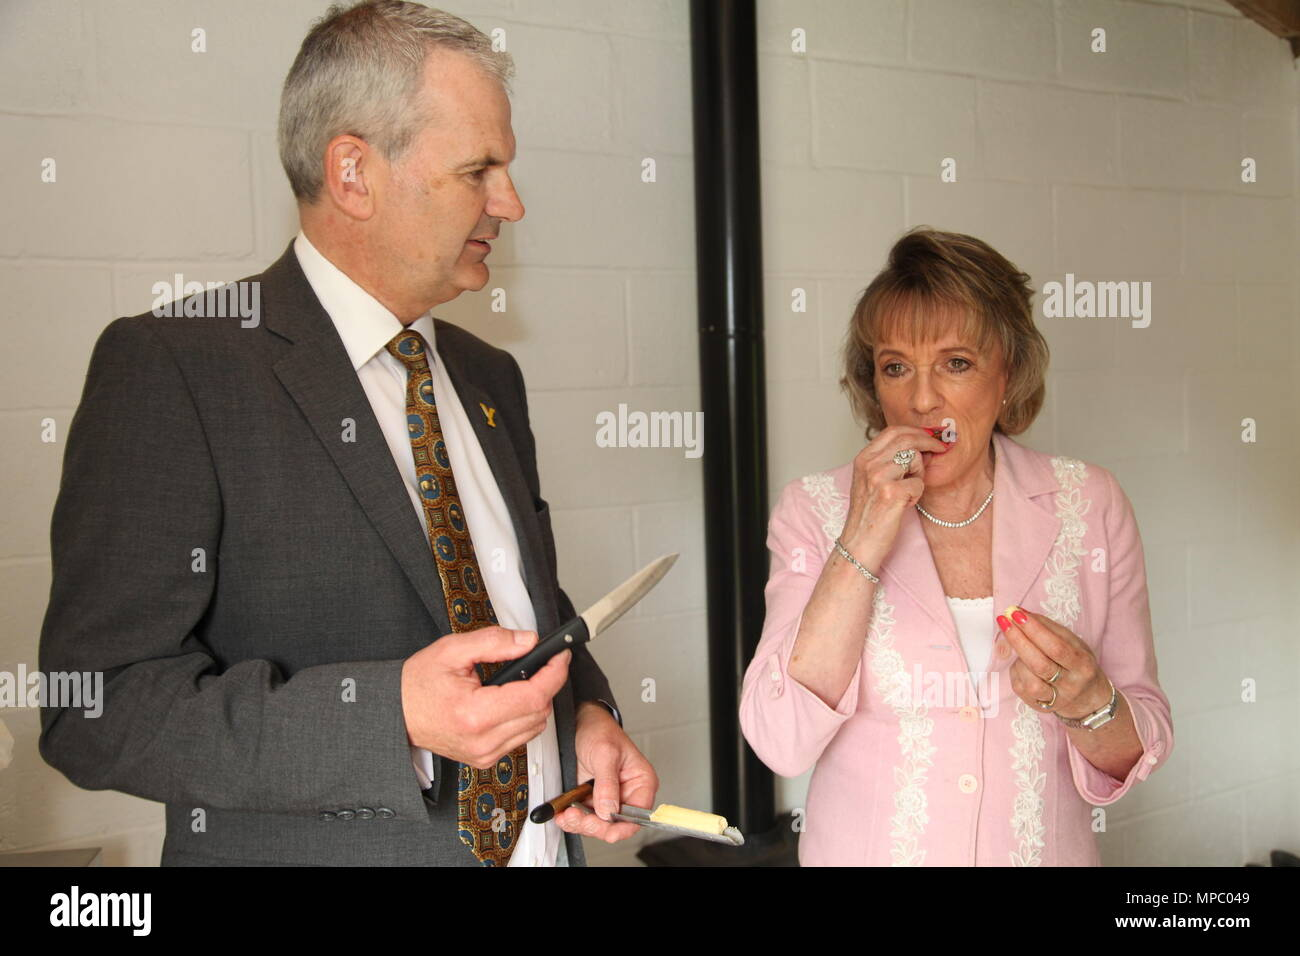 Chelsea, London, UK. 21st May, 2018. Dame Esther Rantzen and David Hartley Managing Director for Wensleydale Creamery cheese tasting in the bothy in the Welcome to Yorkshire garden at Chelsea Flower Show 2018, designed by Mark Gregory for Landformconsultants.co.uk Credit: Jenny Lilly/Alamy Live News - Stock Image